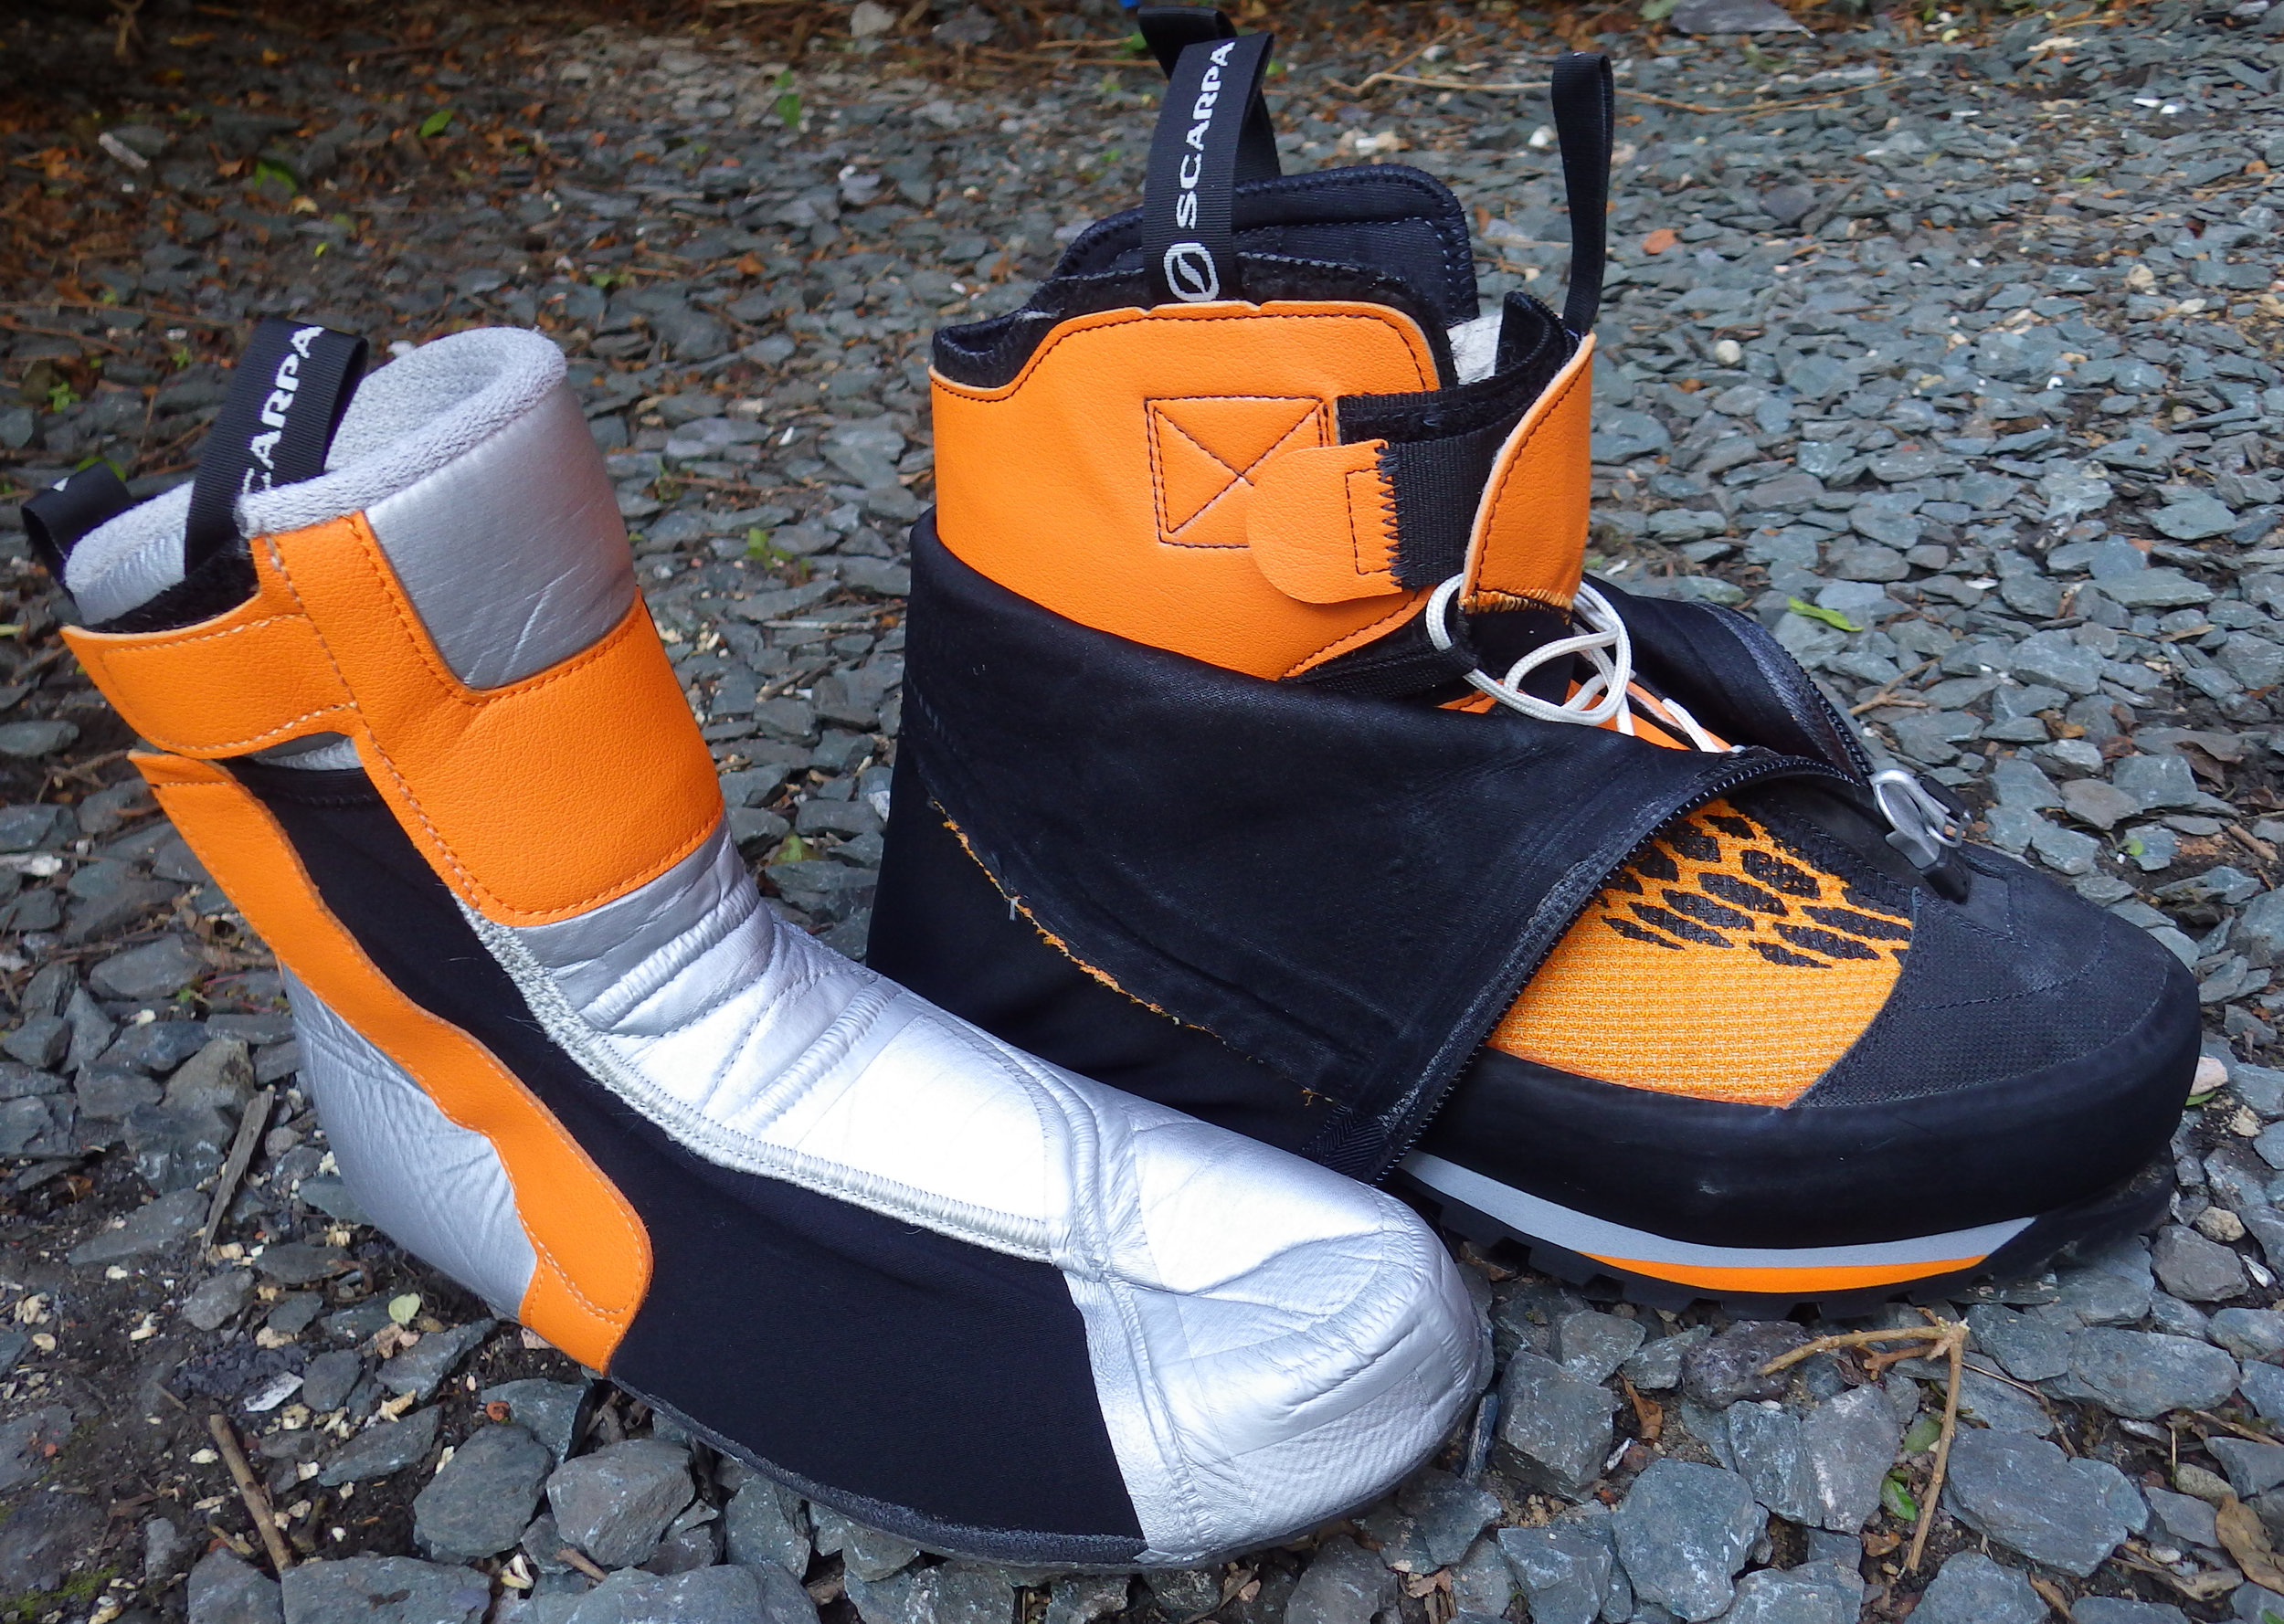 Double Boot: Inner (Left) & Outer (Right)